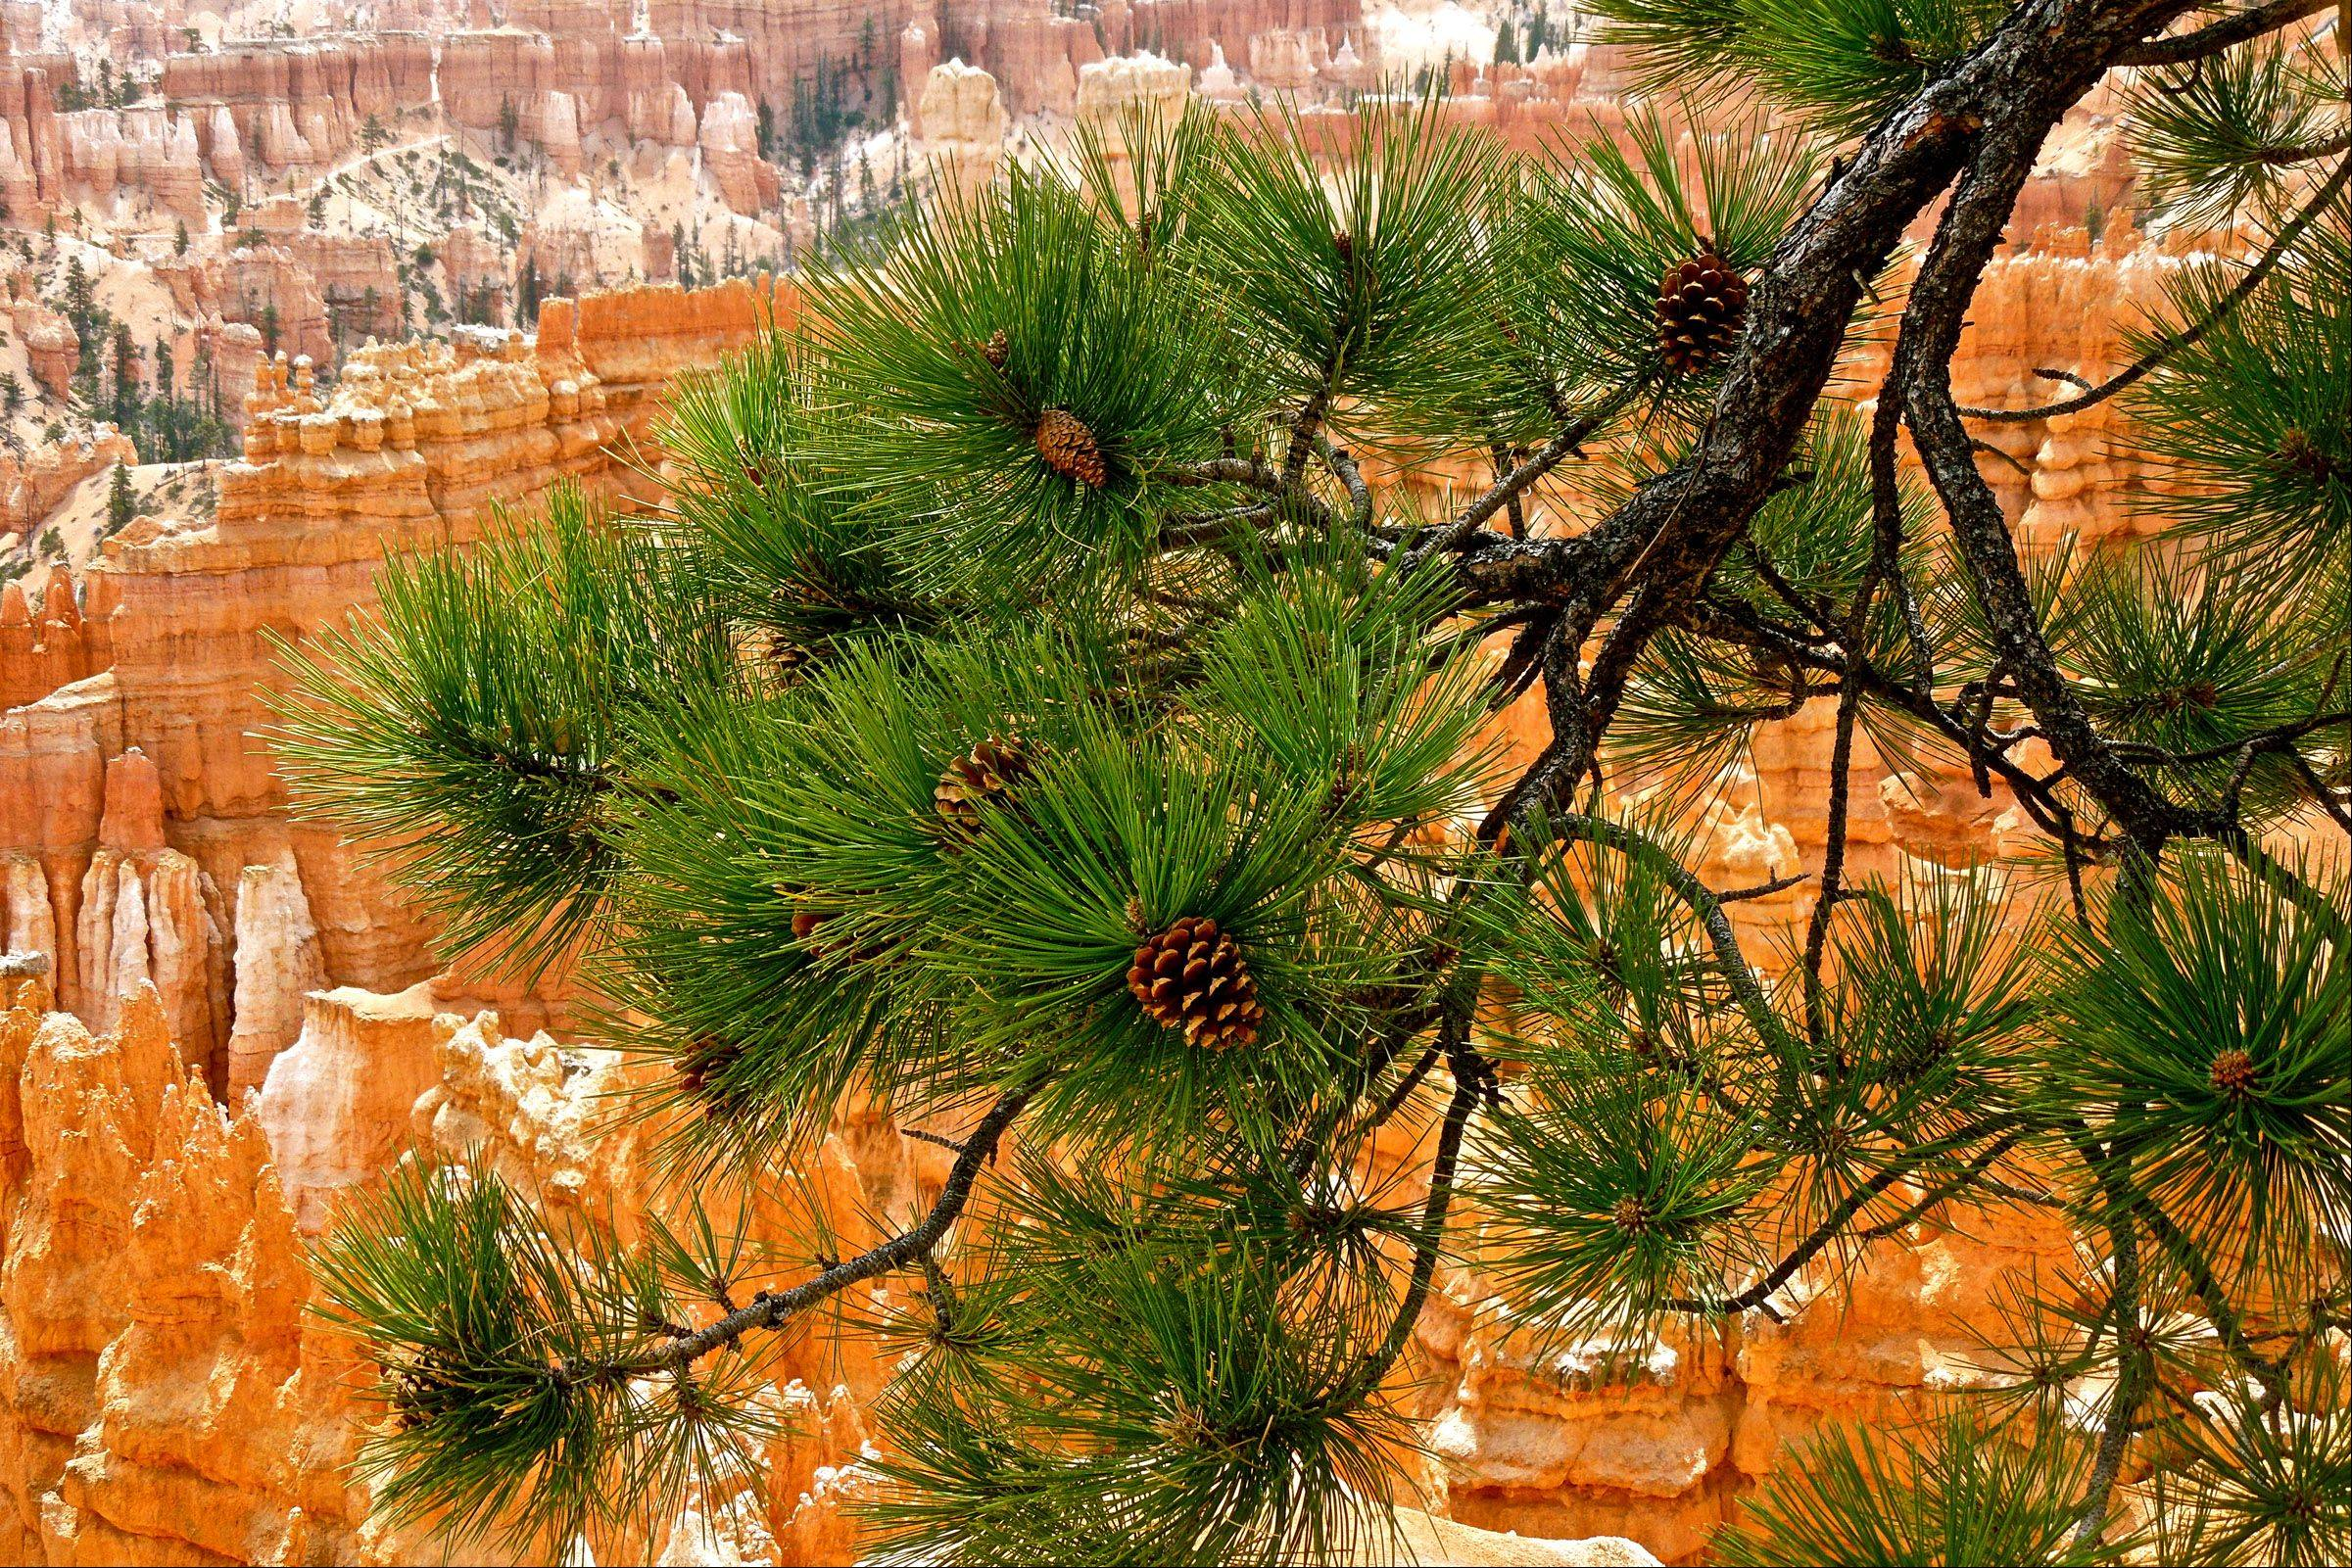 I took this photo while we were at Bryce Canyon national park last month. The green pine tree with its pine cone against the red rock of Bryce is an eye catcher.